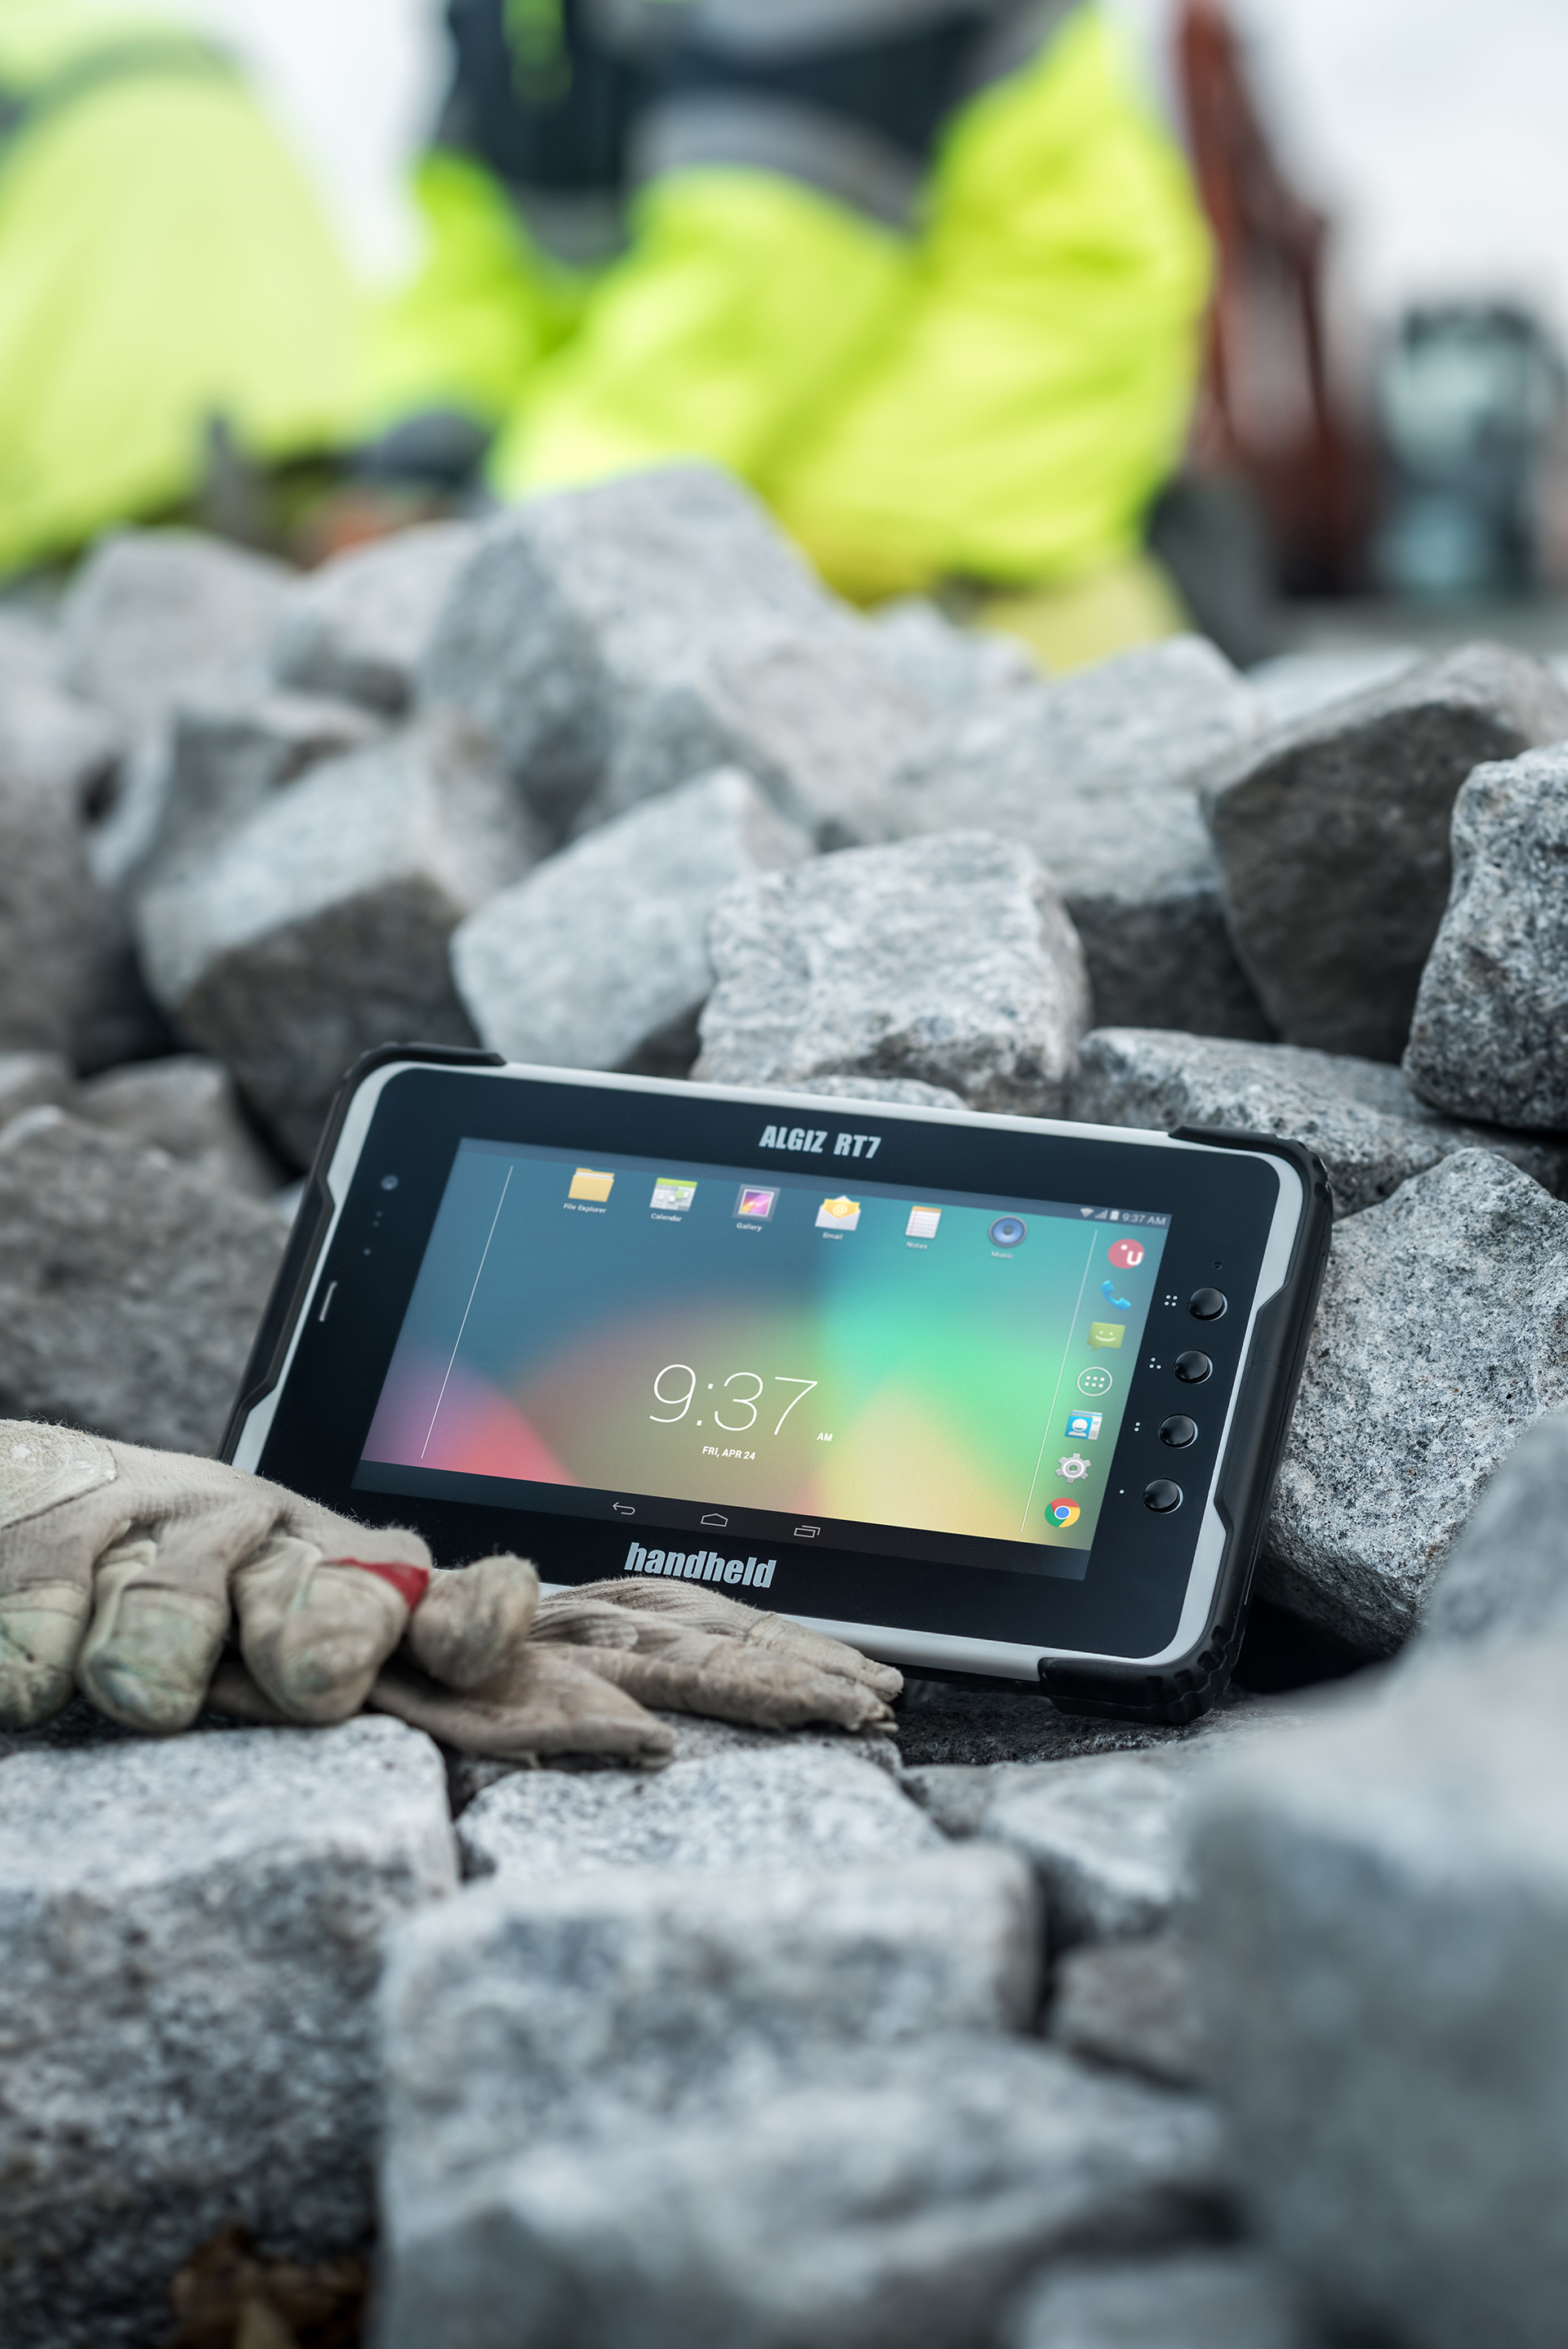 ALGIZ-RT7-rugged-tablet-Android-outdoors.jpg